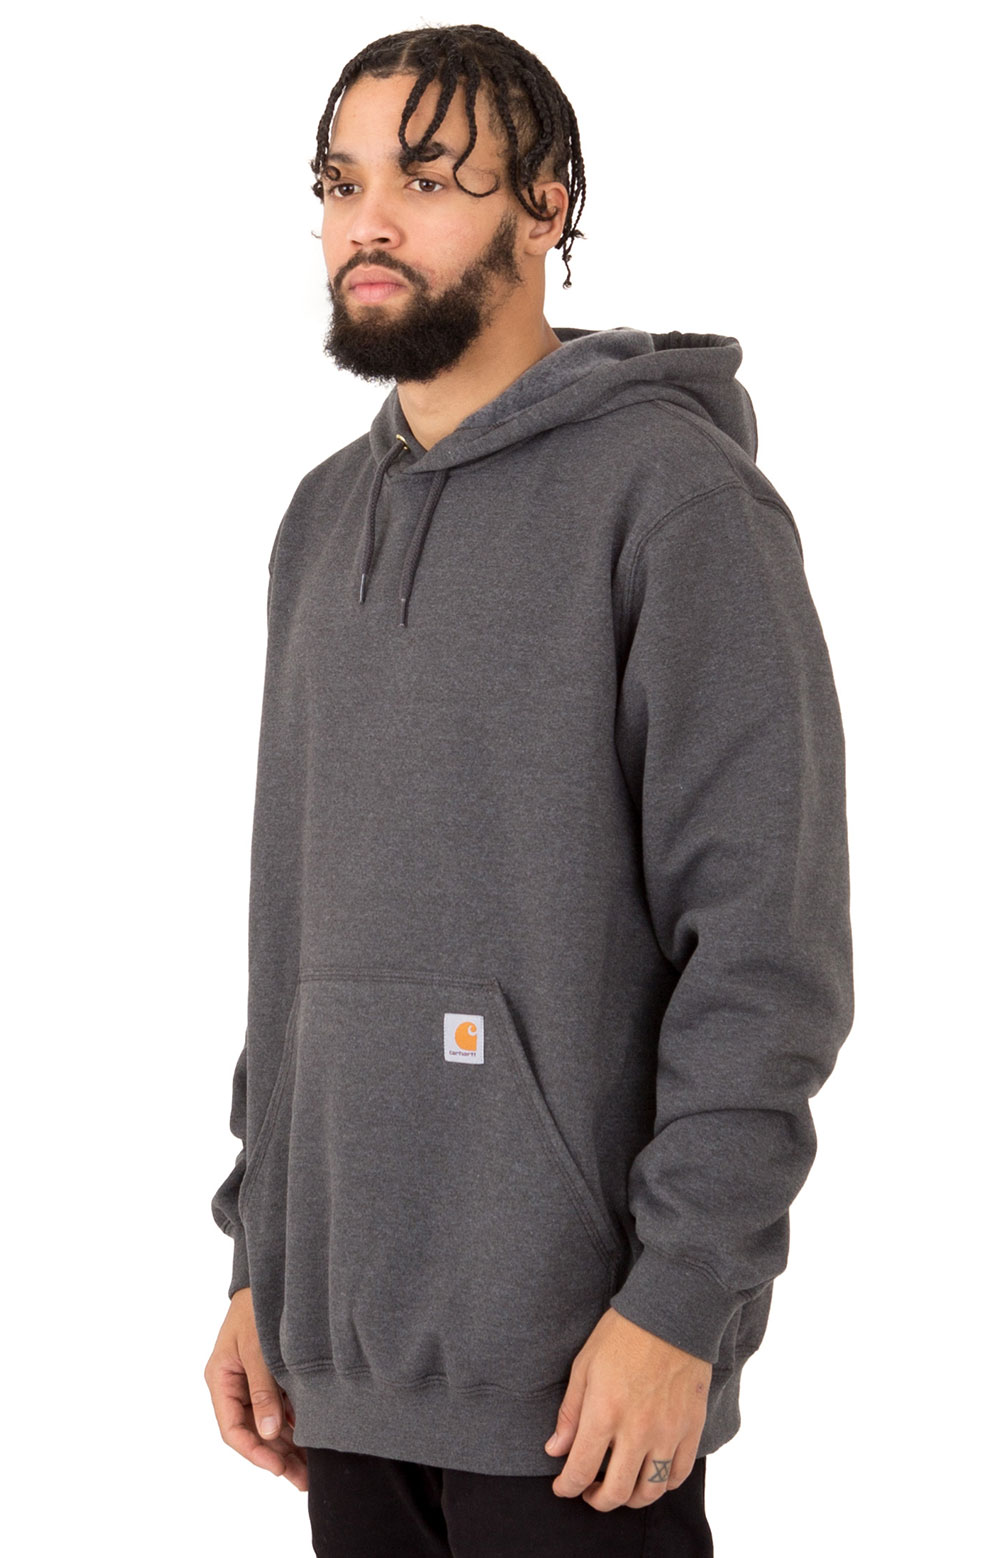 (K121) Midweight Pullover Hoodie - Carbon Heather  3